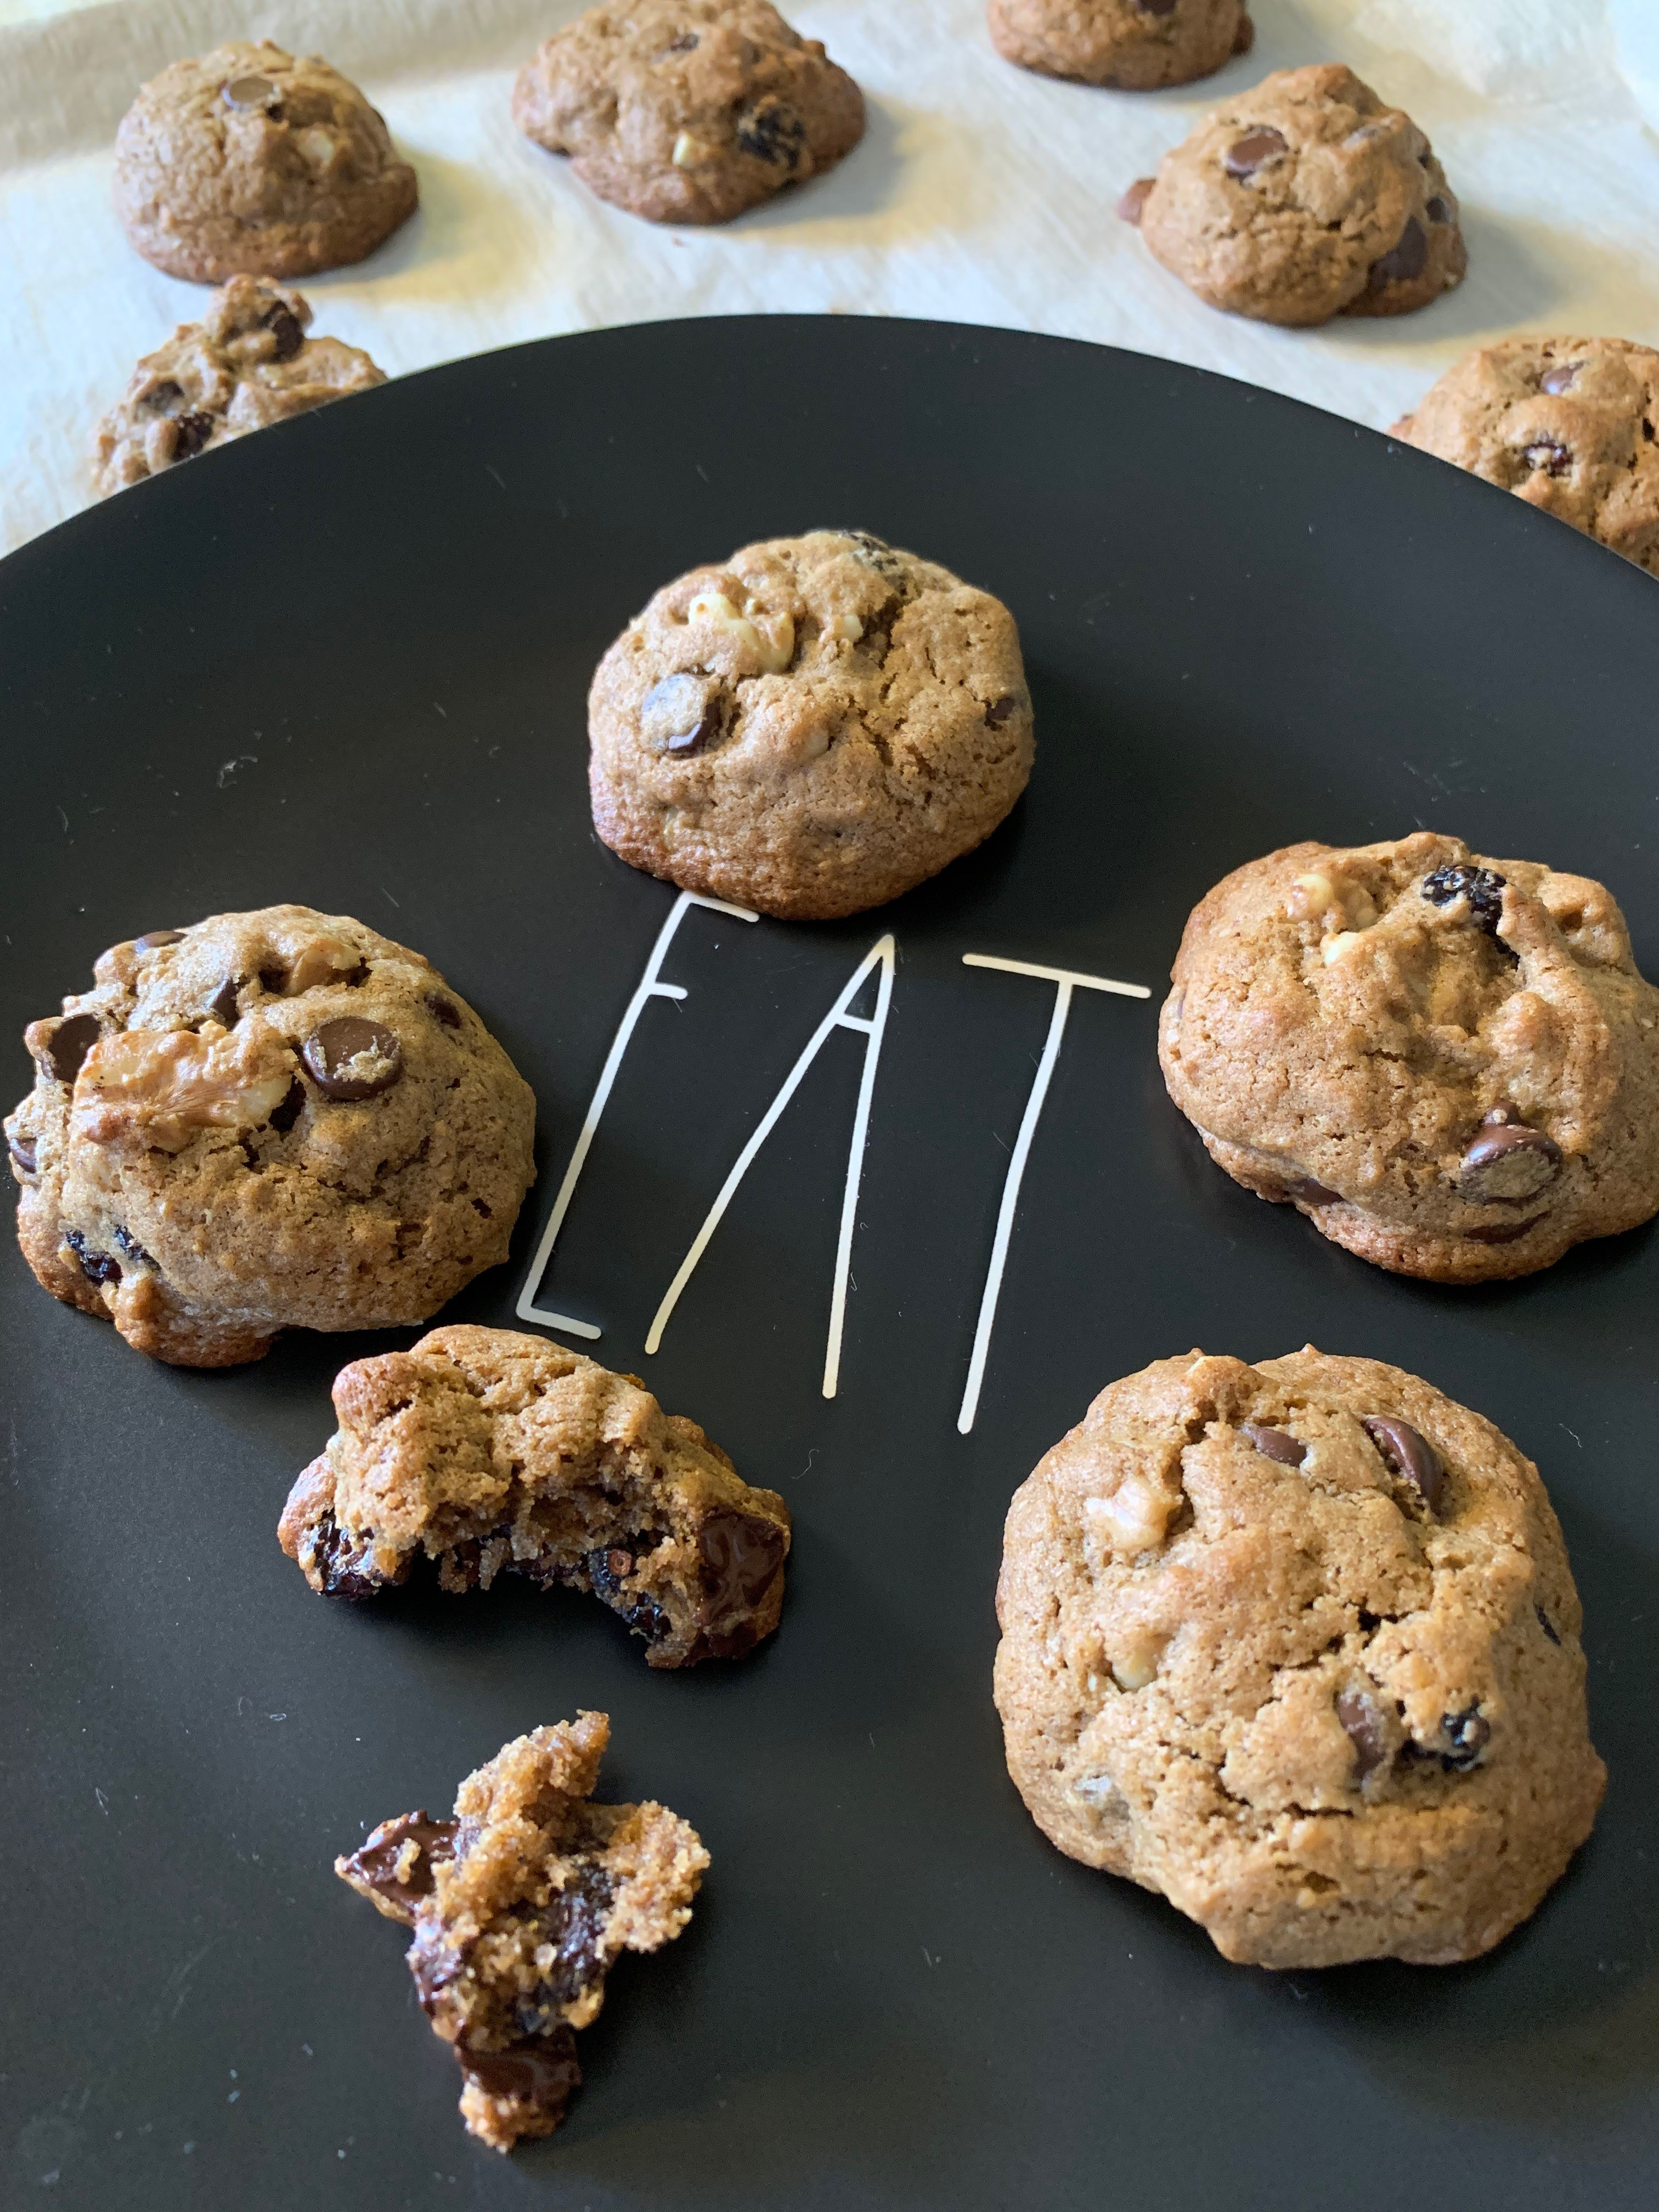 Gluten and Grain Free Banana Flour Chocolate Chip Cookies